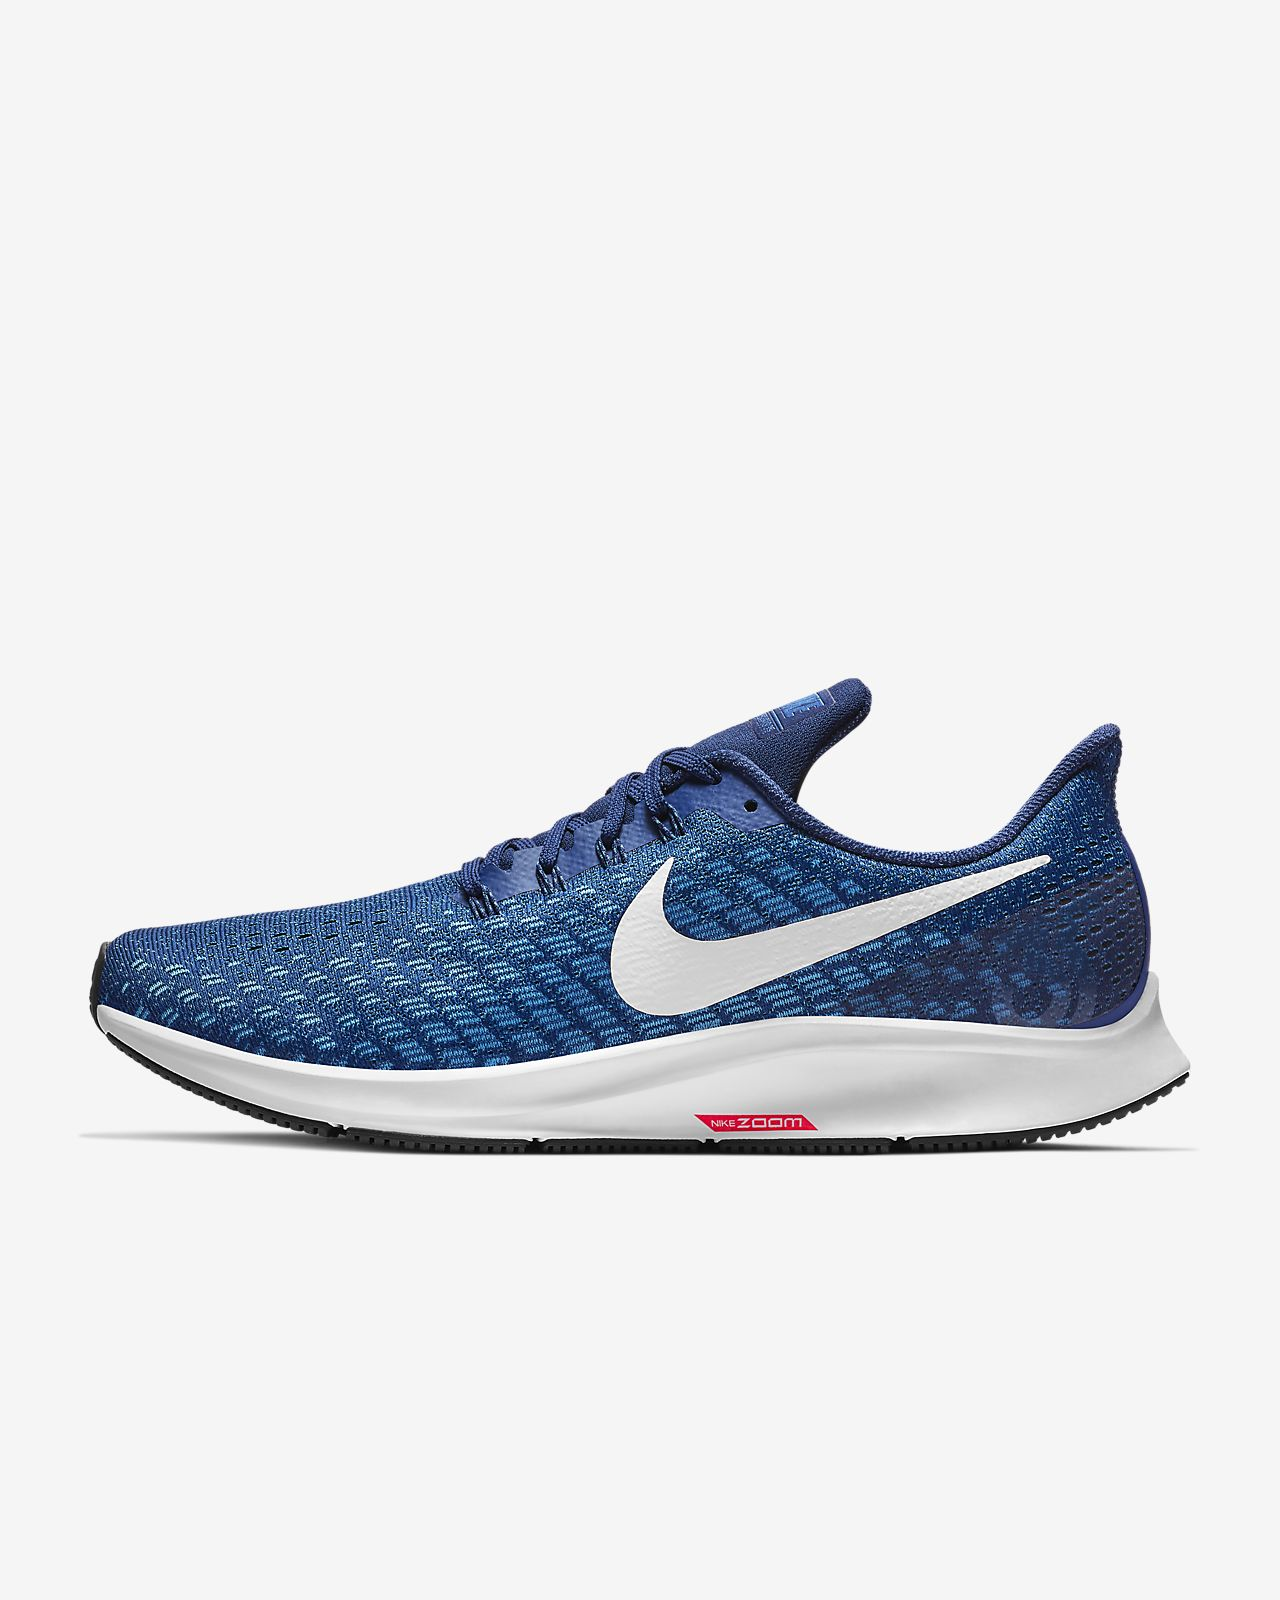 acf1e8109e4e Nike Air Zoom Pegasus 35 Men s Running Shoe. Nike.com CA